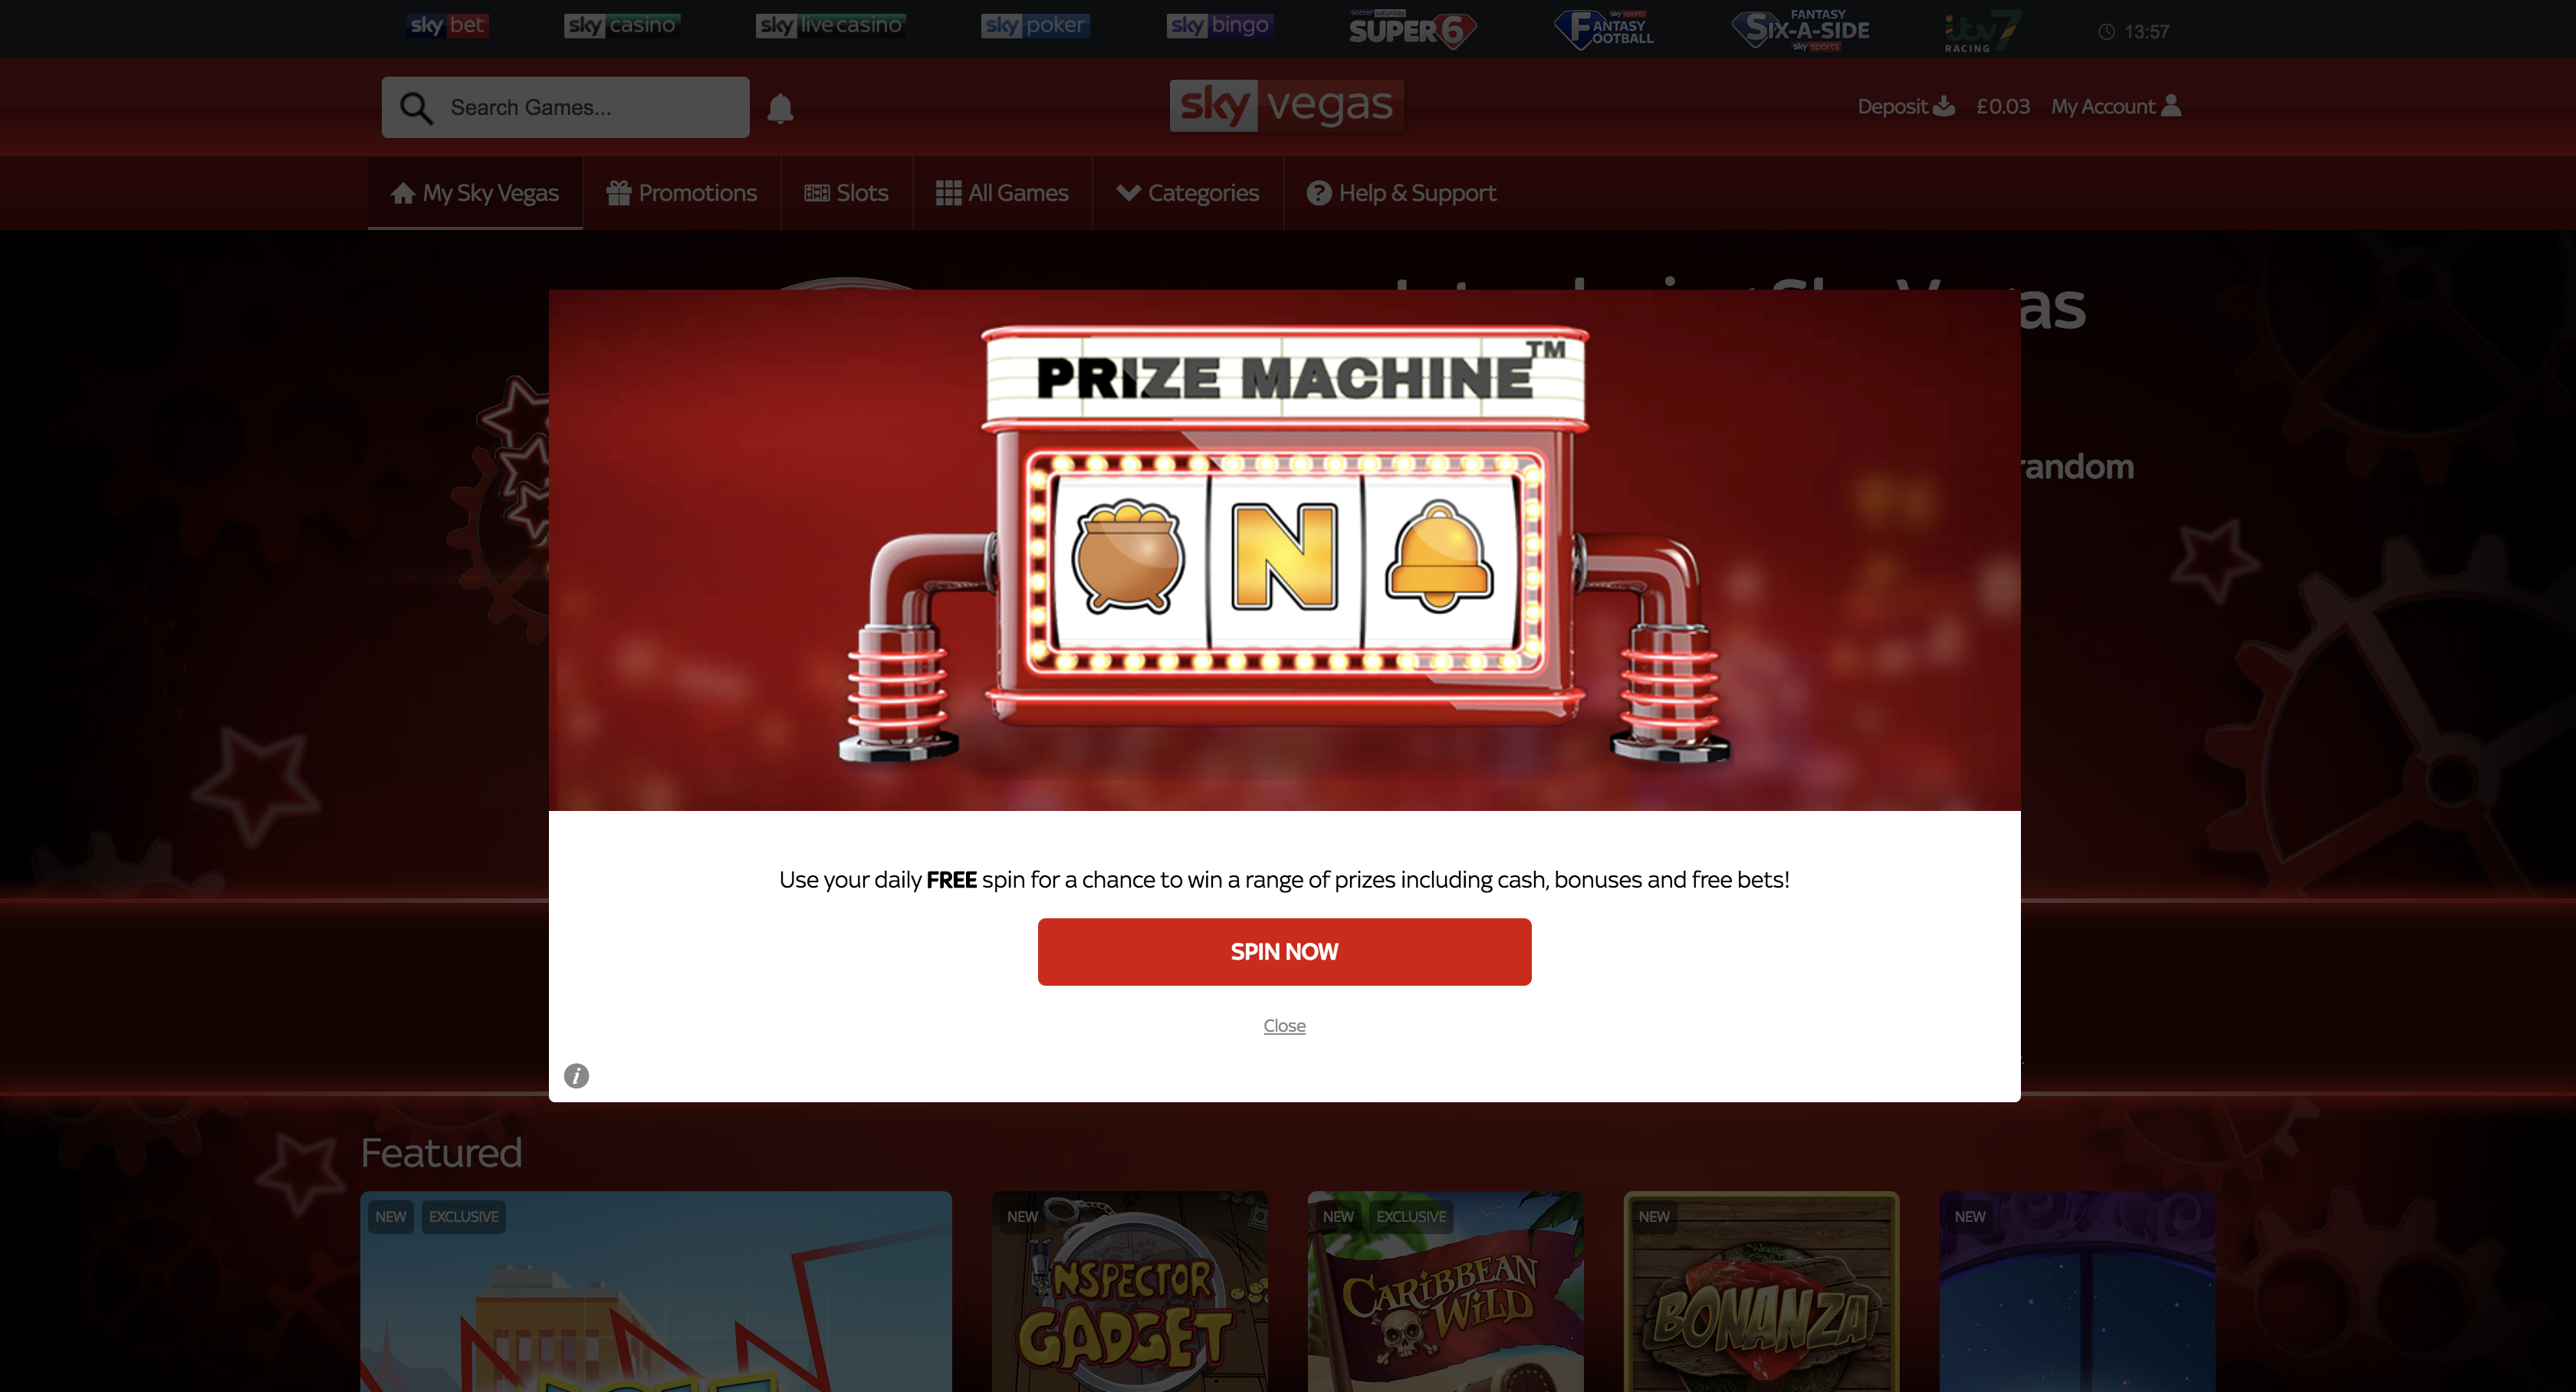 Sky Vegas prize machine